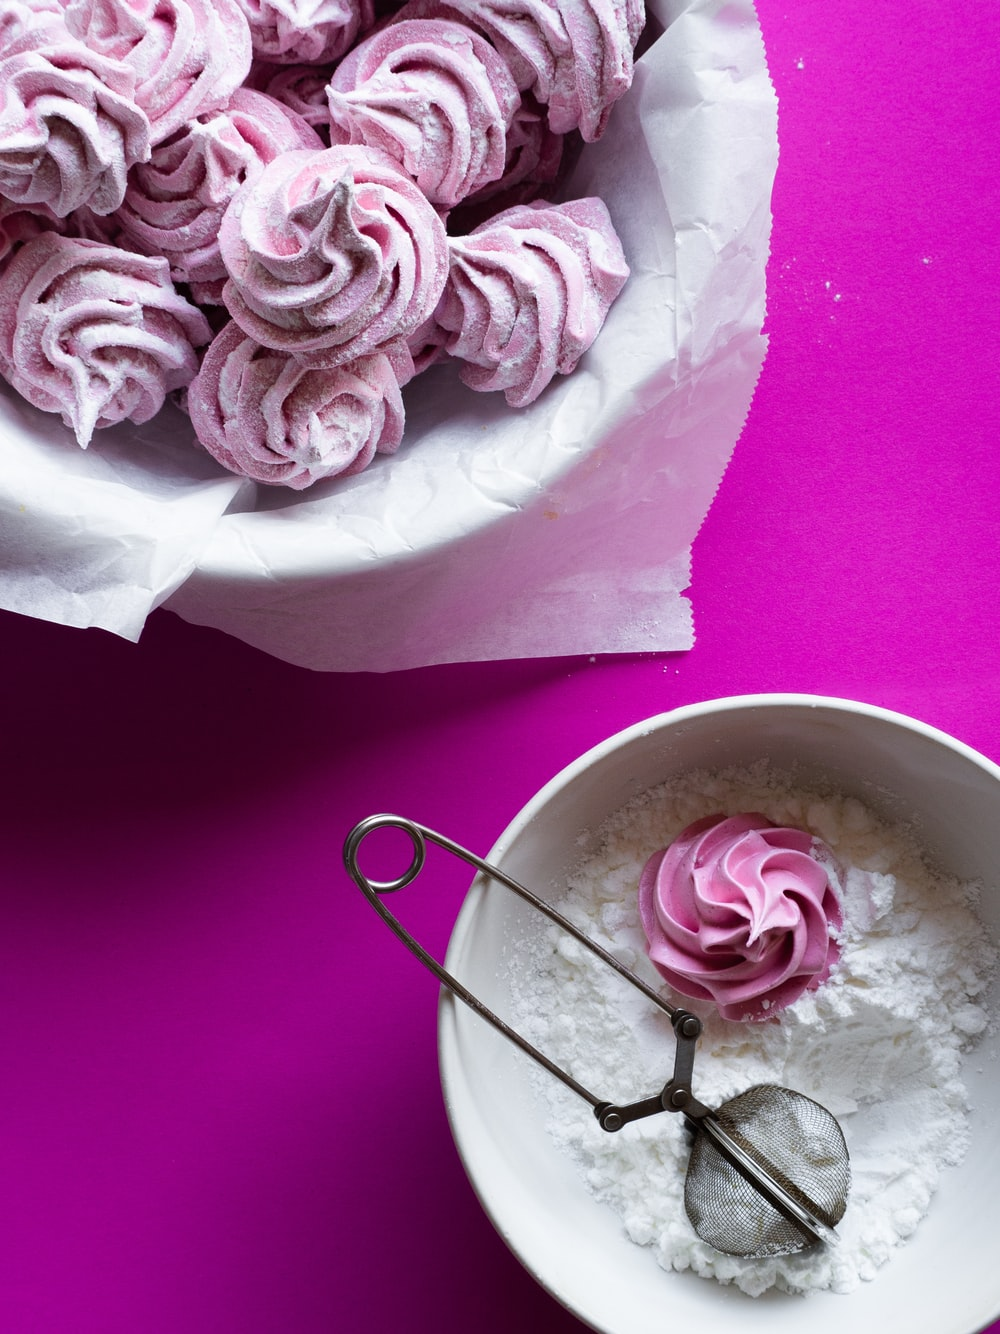 pink rose bouquet on white ceramic bowl